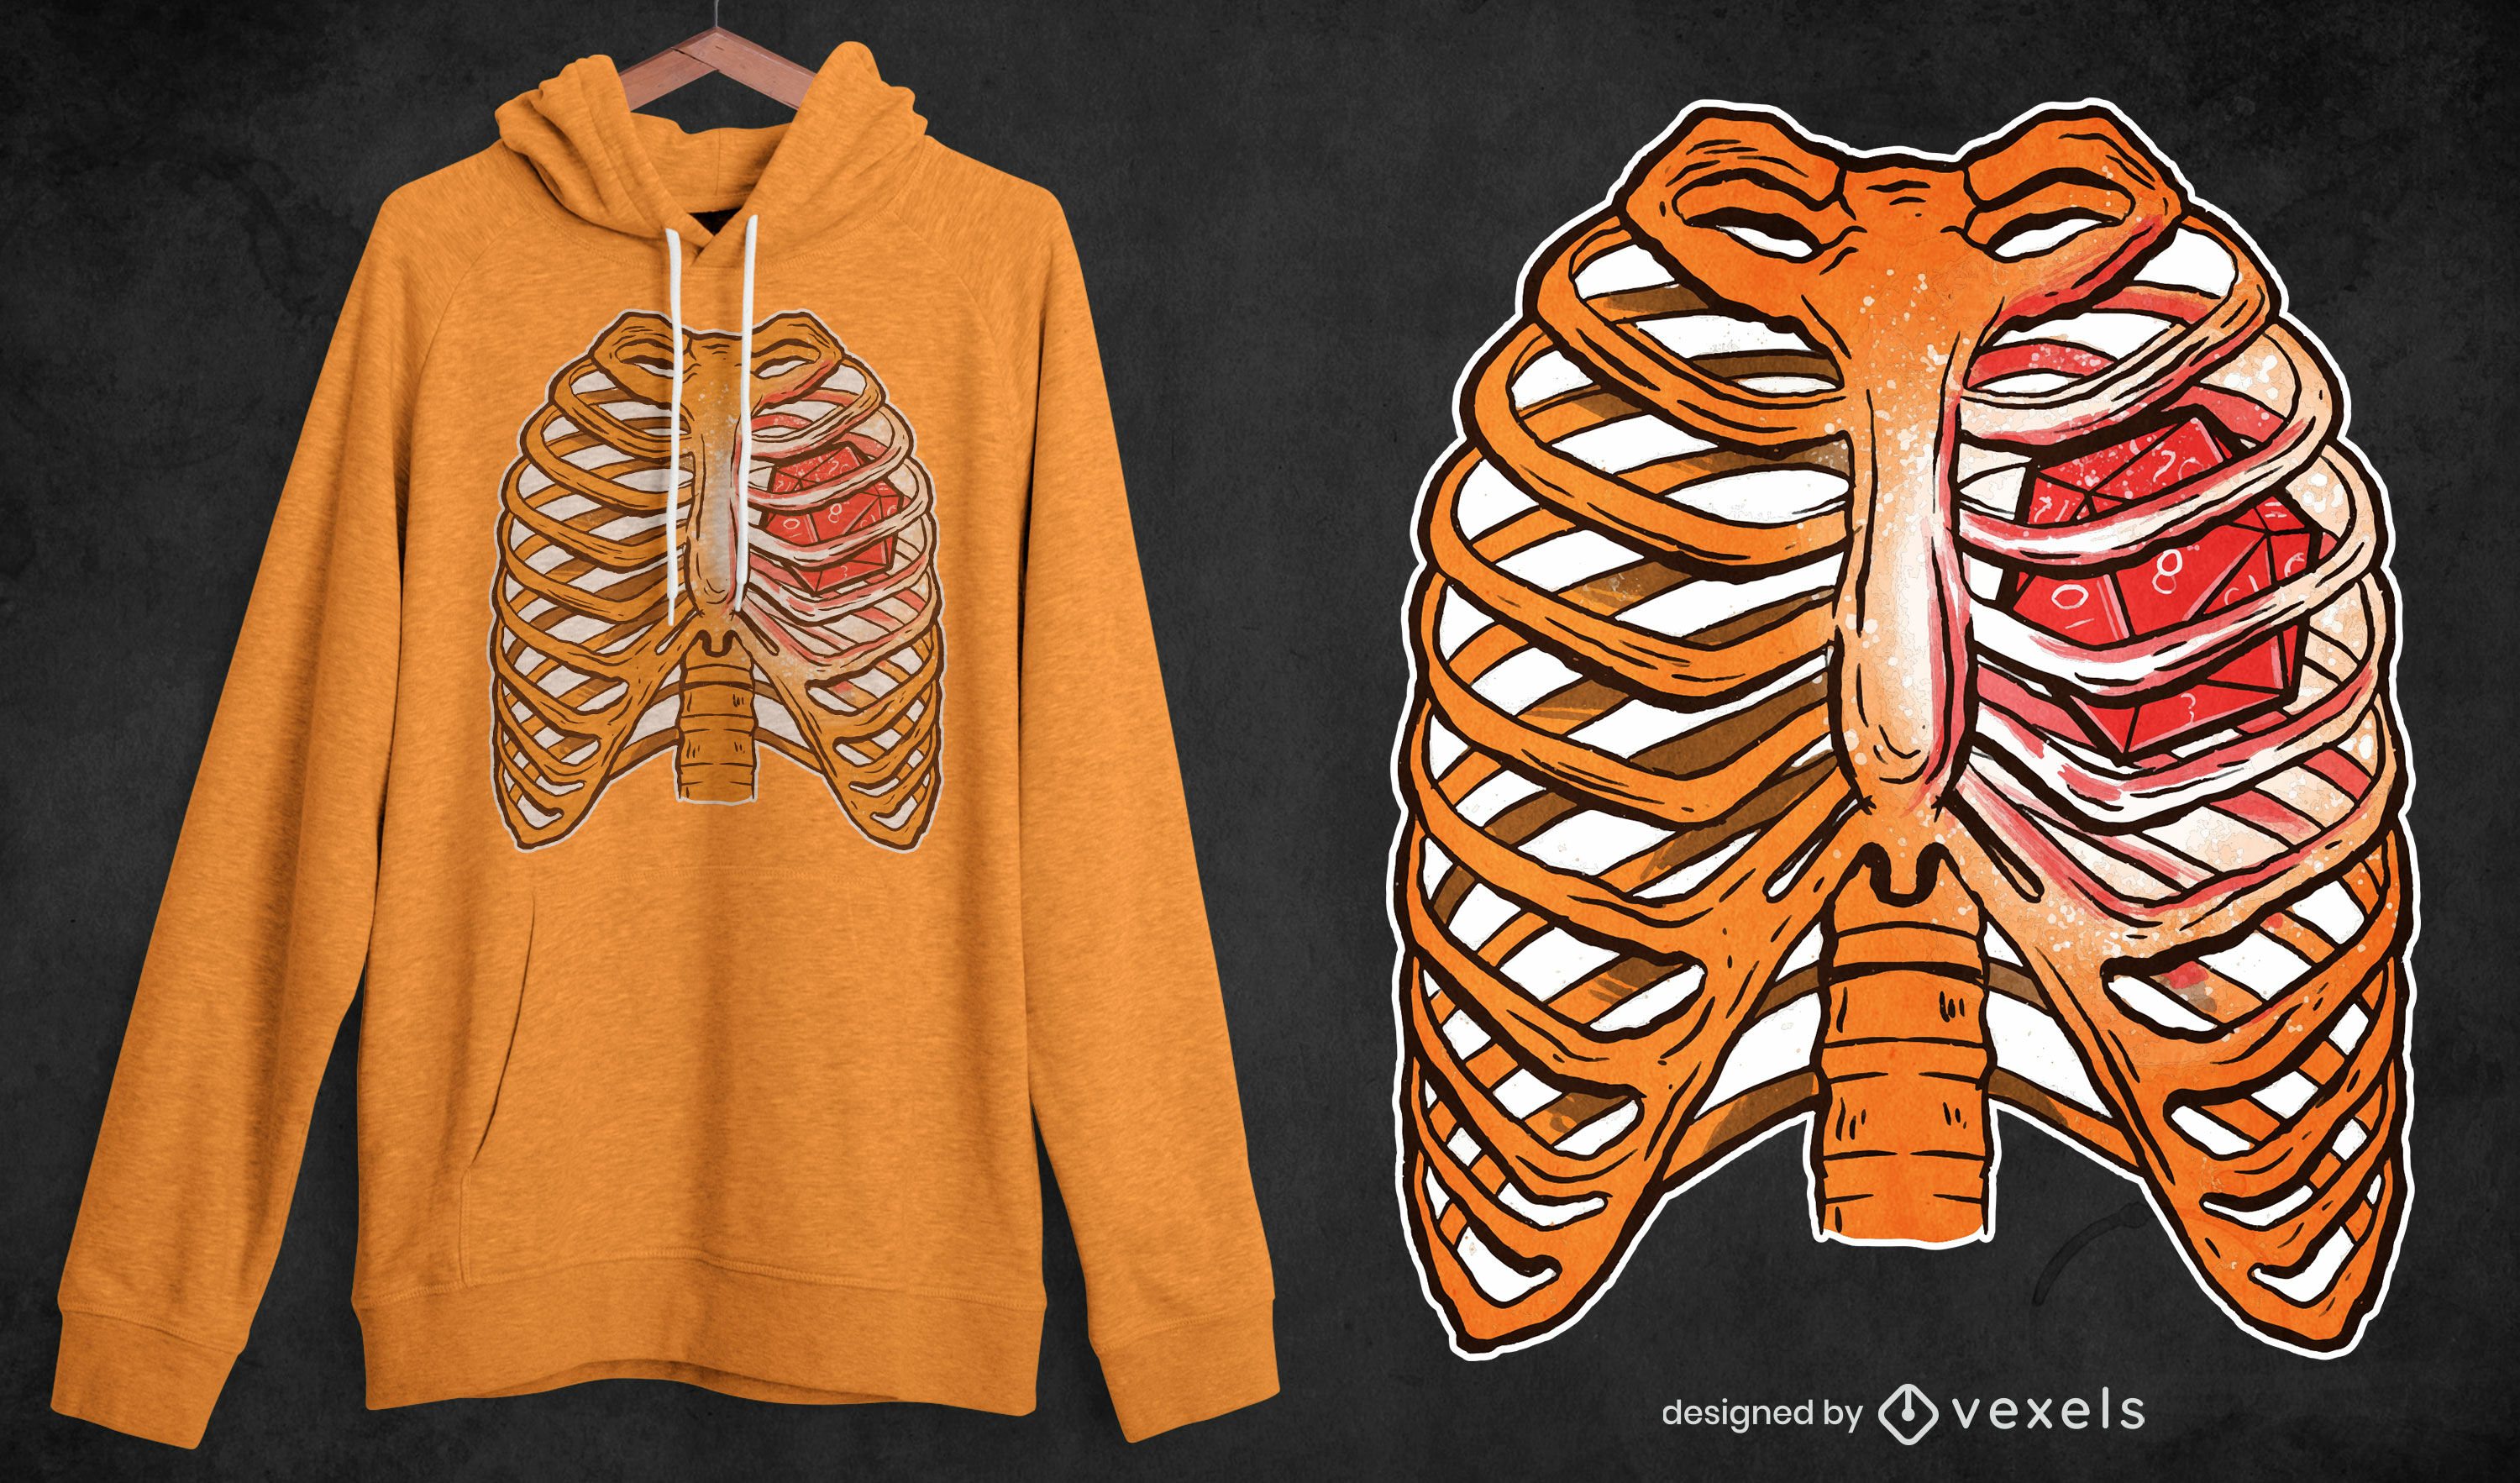 Role-playing dice ribcage t-shirt design